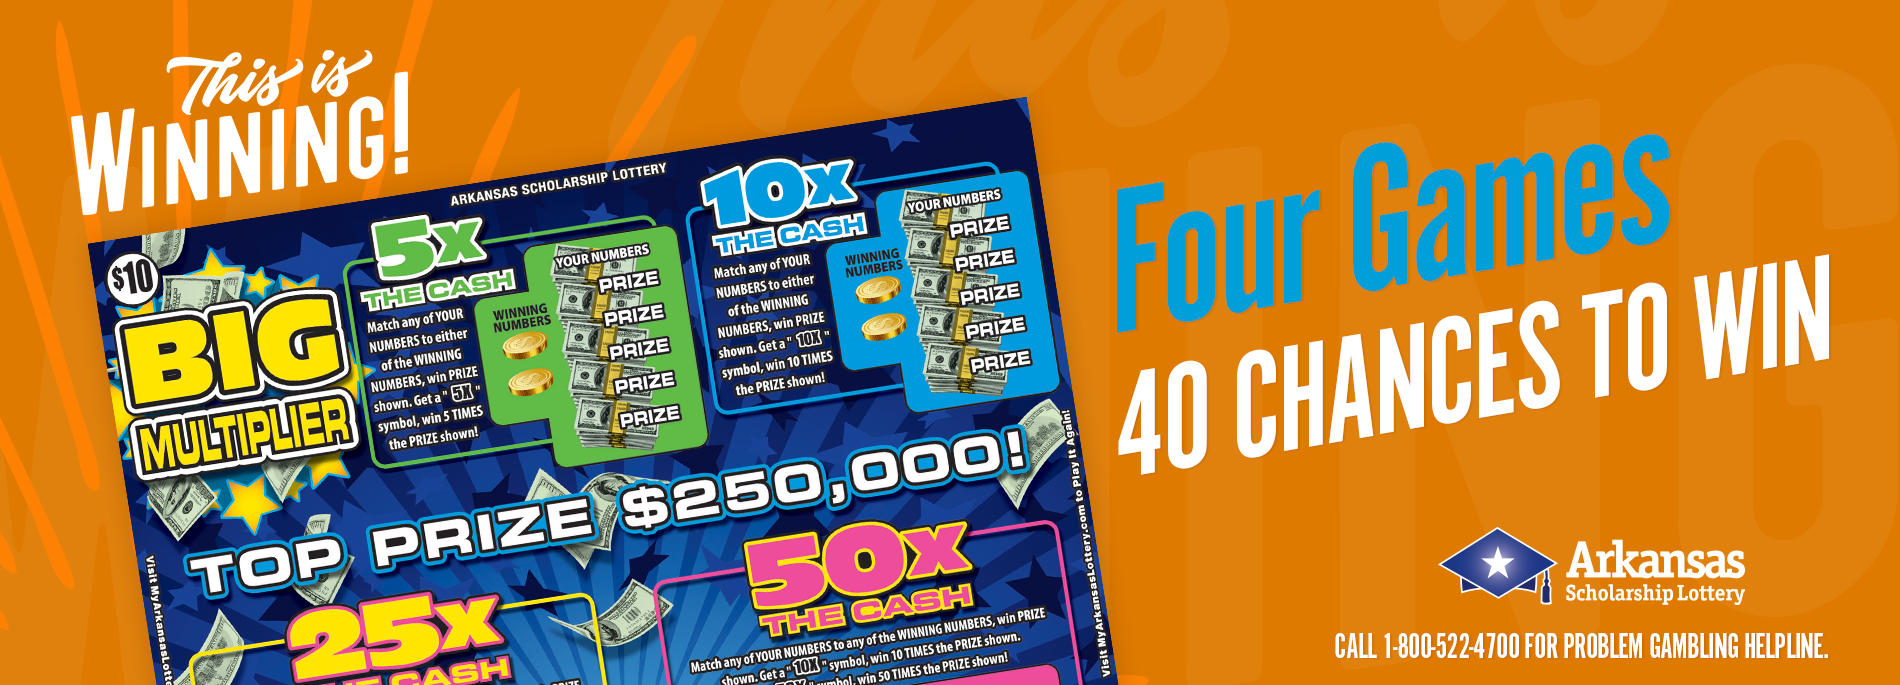 The Big Multiplier ticket has four games and 40 ways to win!